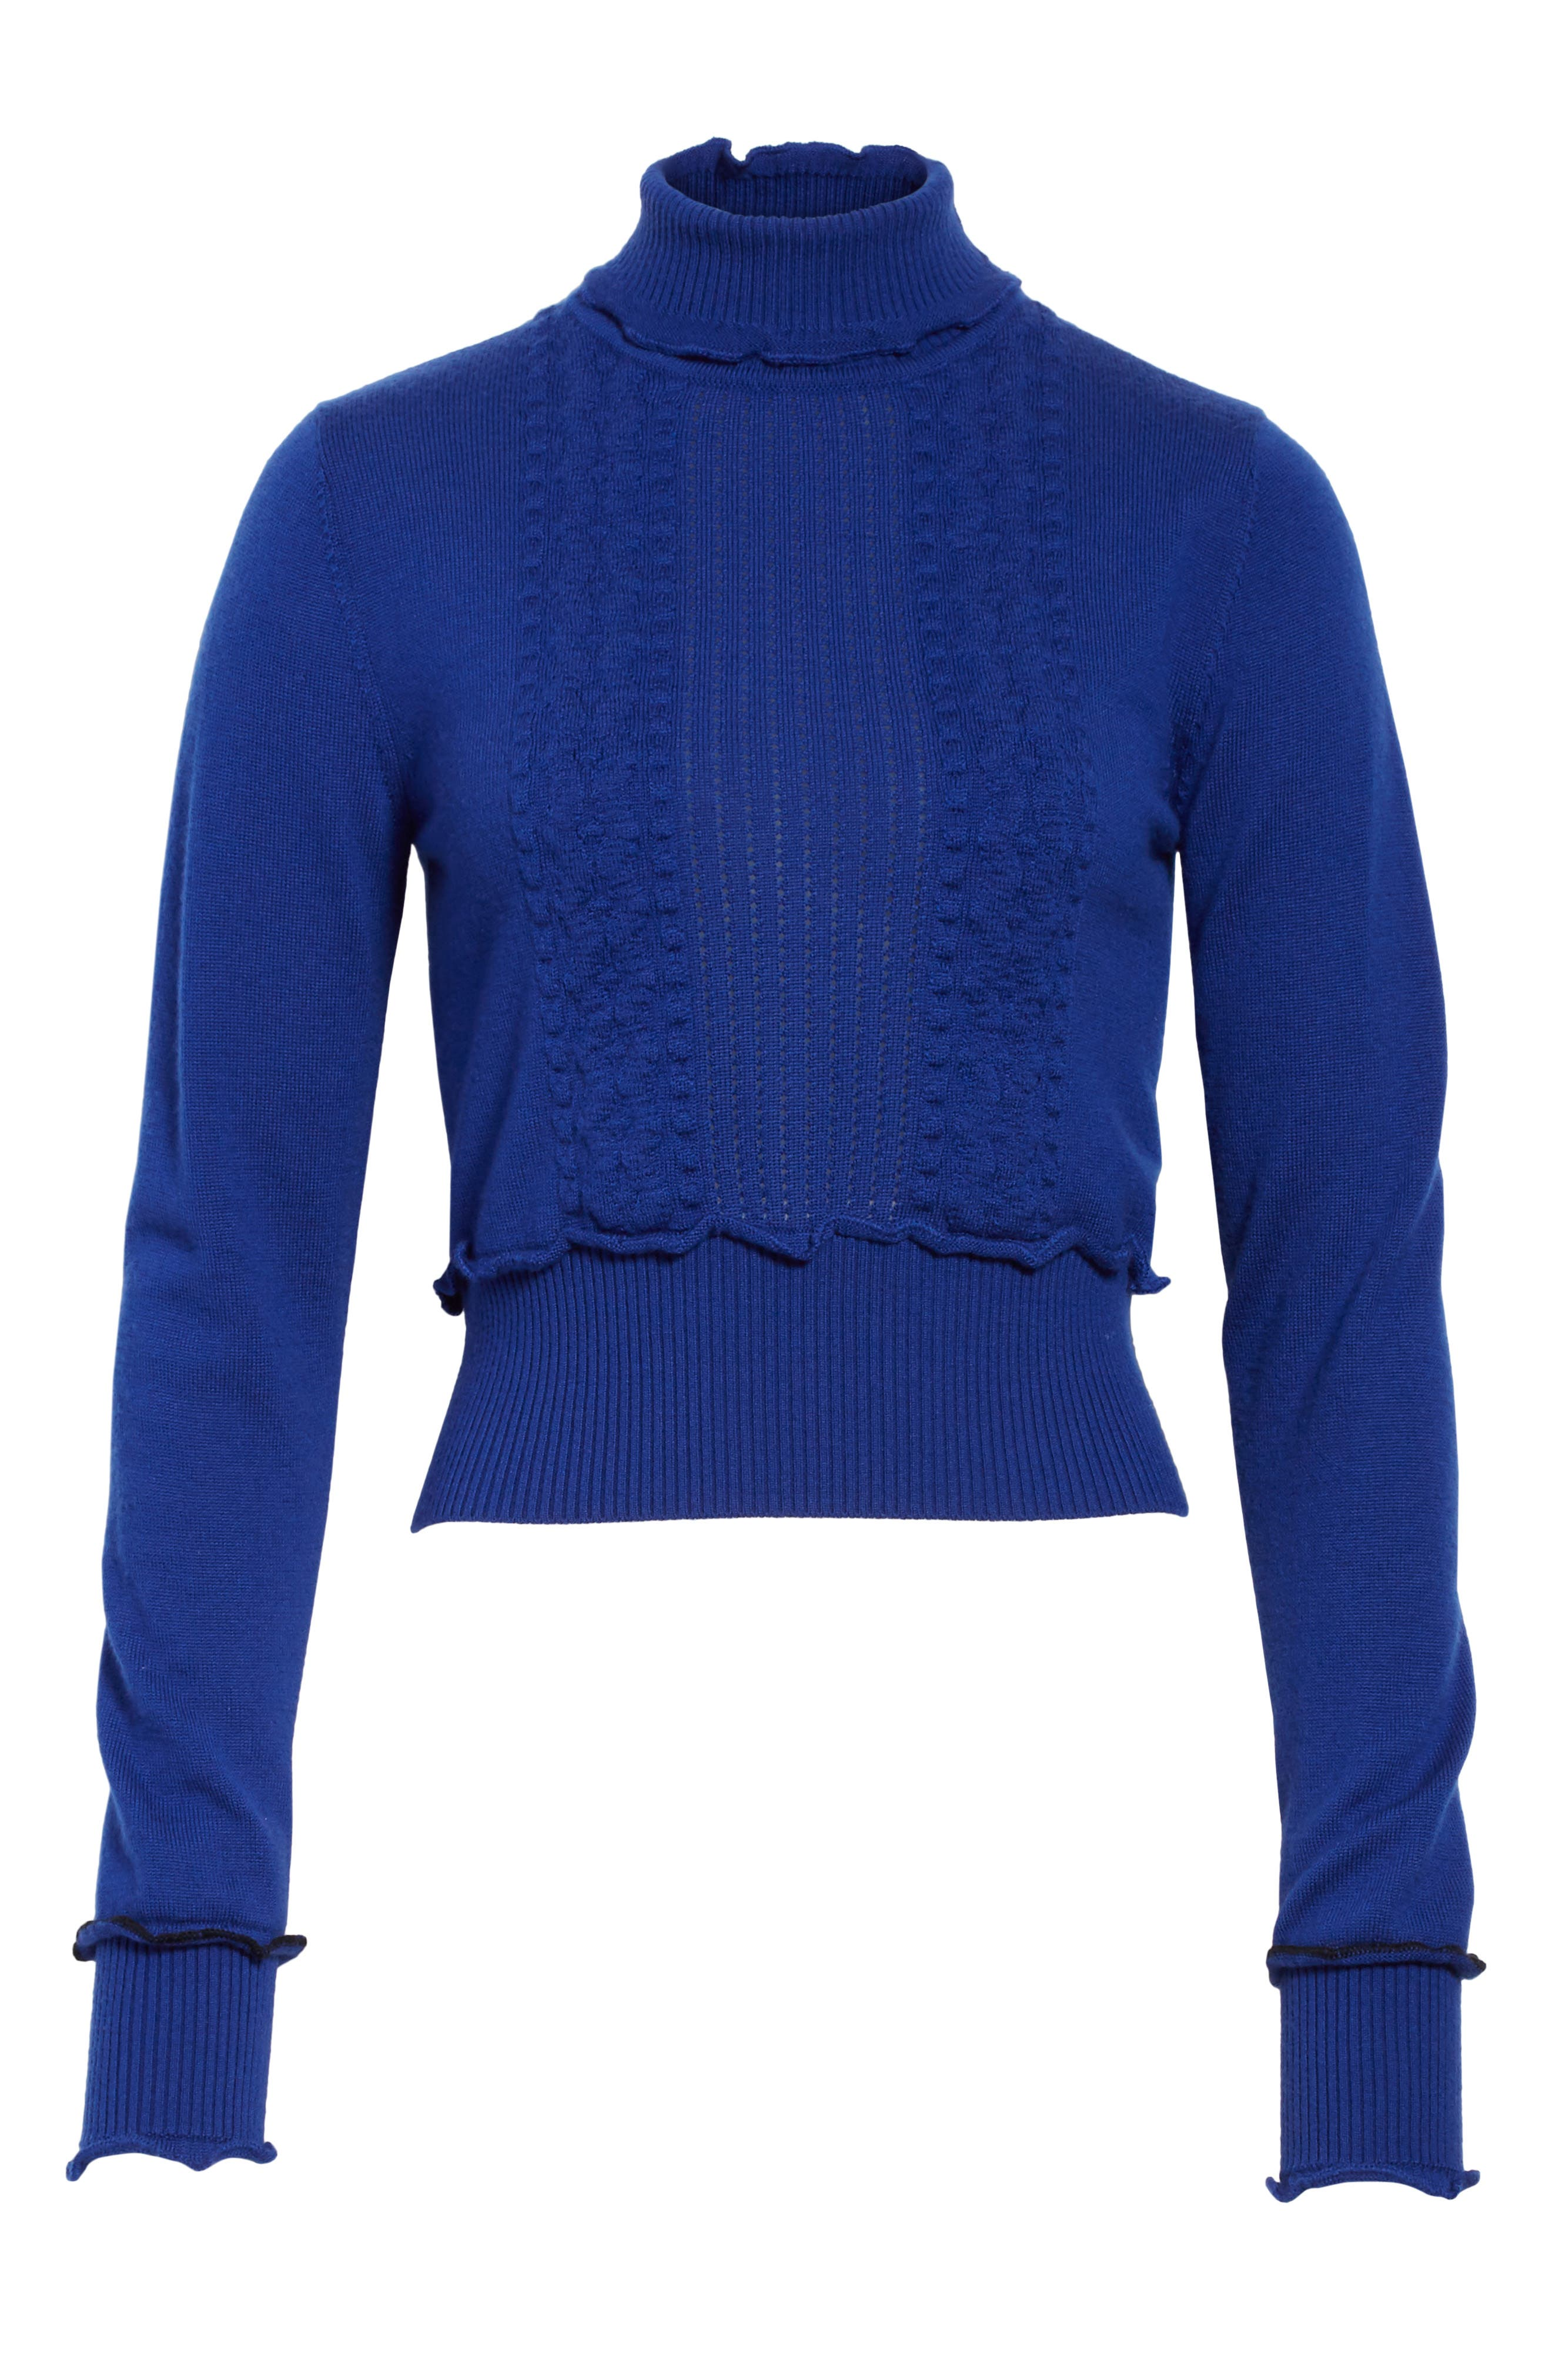 Puffy Cable Turtleneck Sweater,                             Alternate thumbnail 6, color,                             430